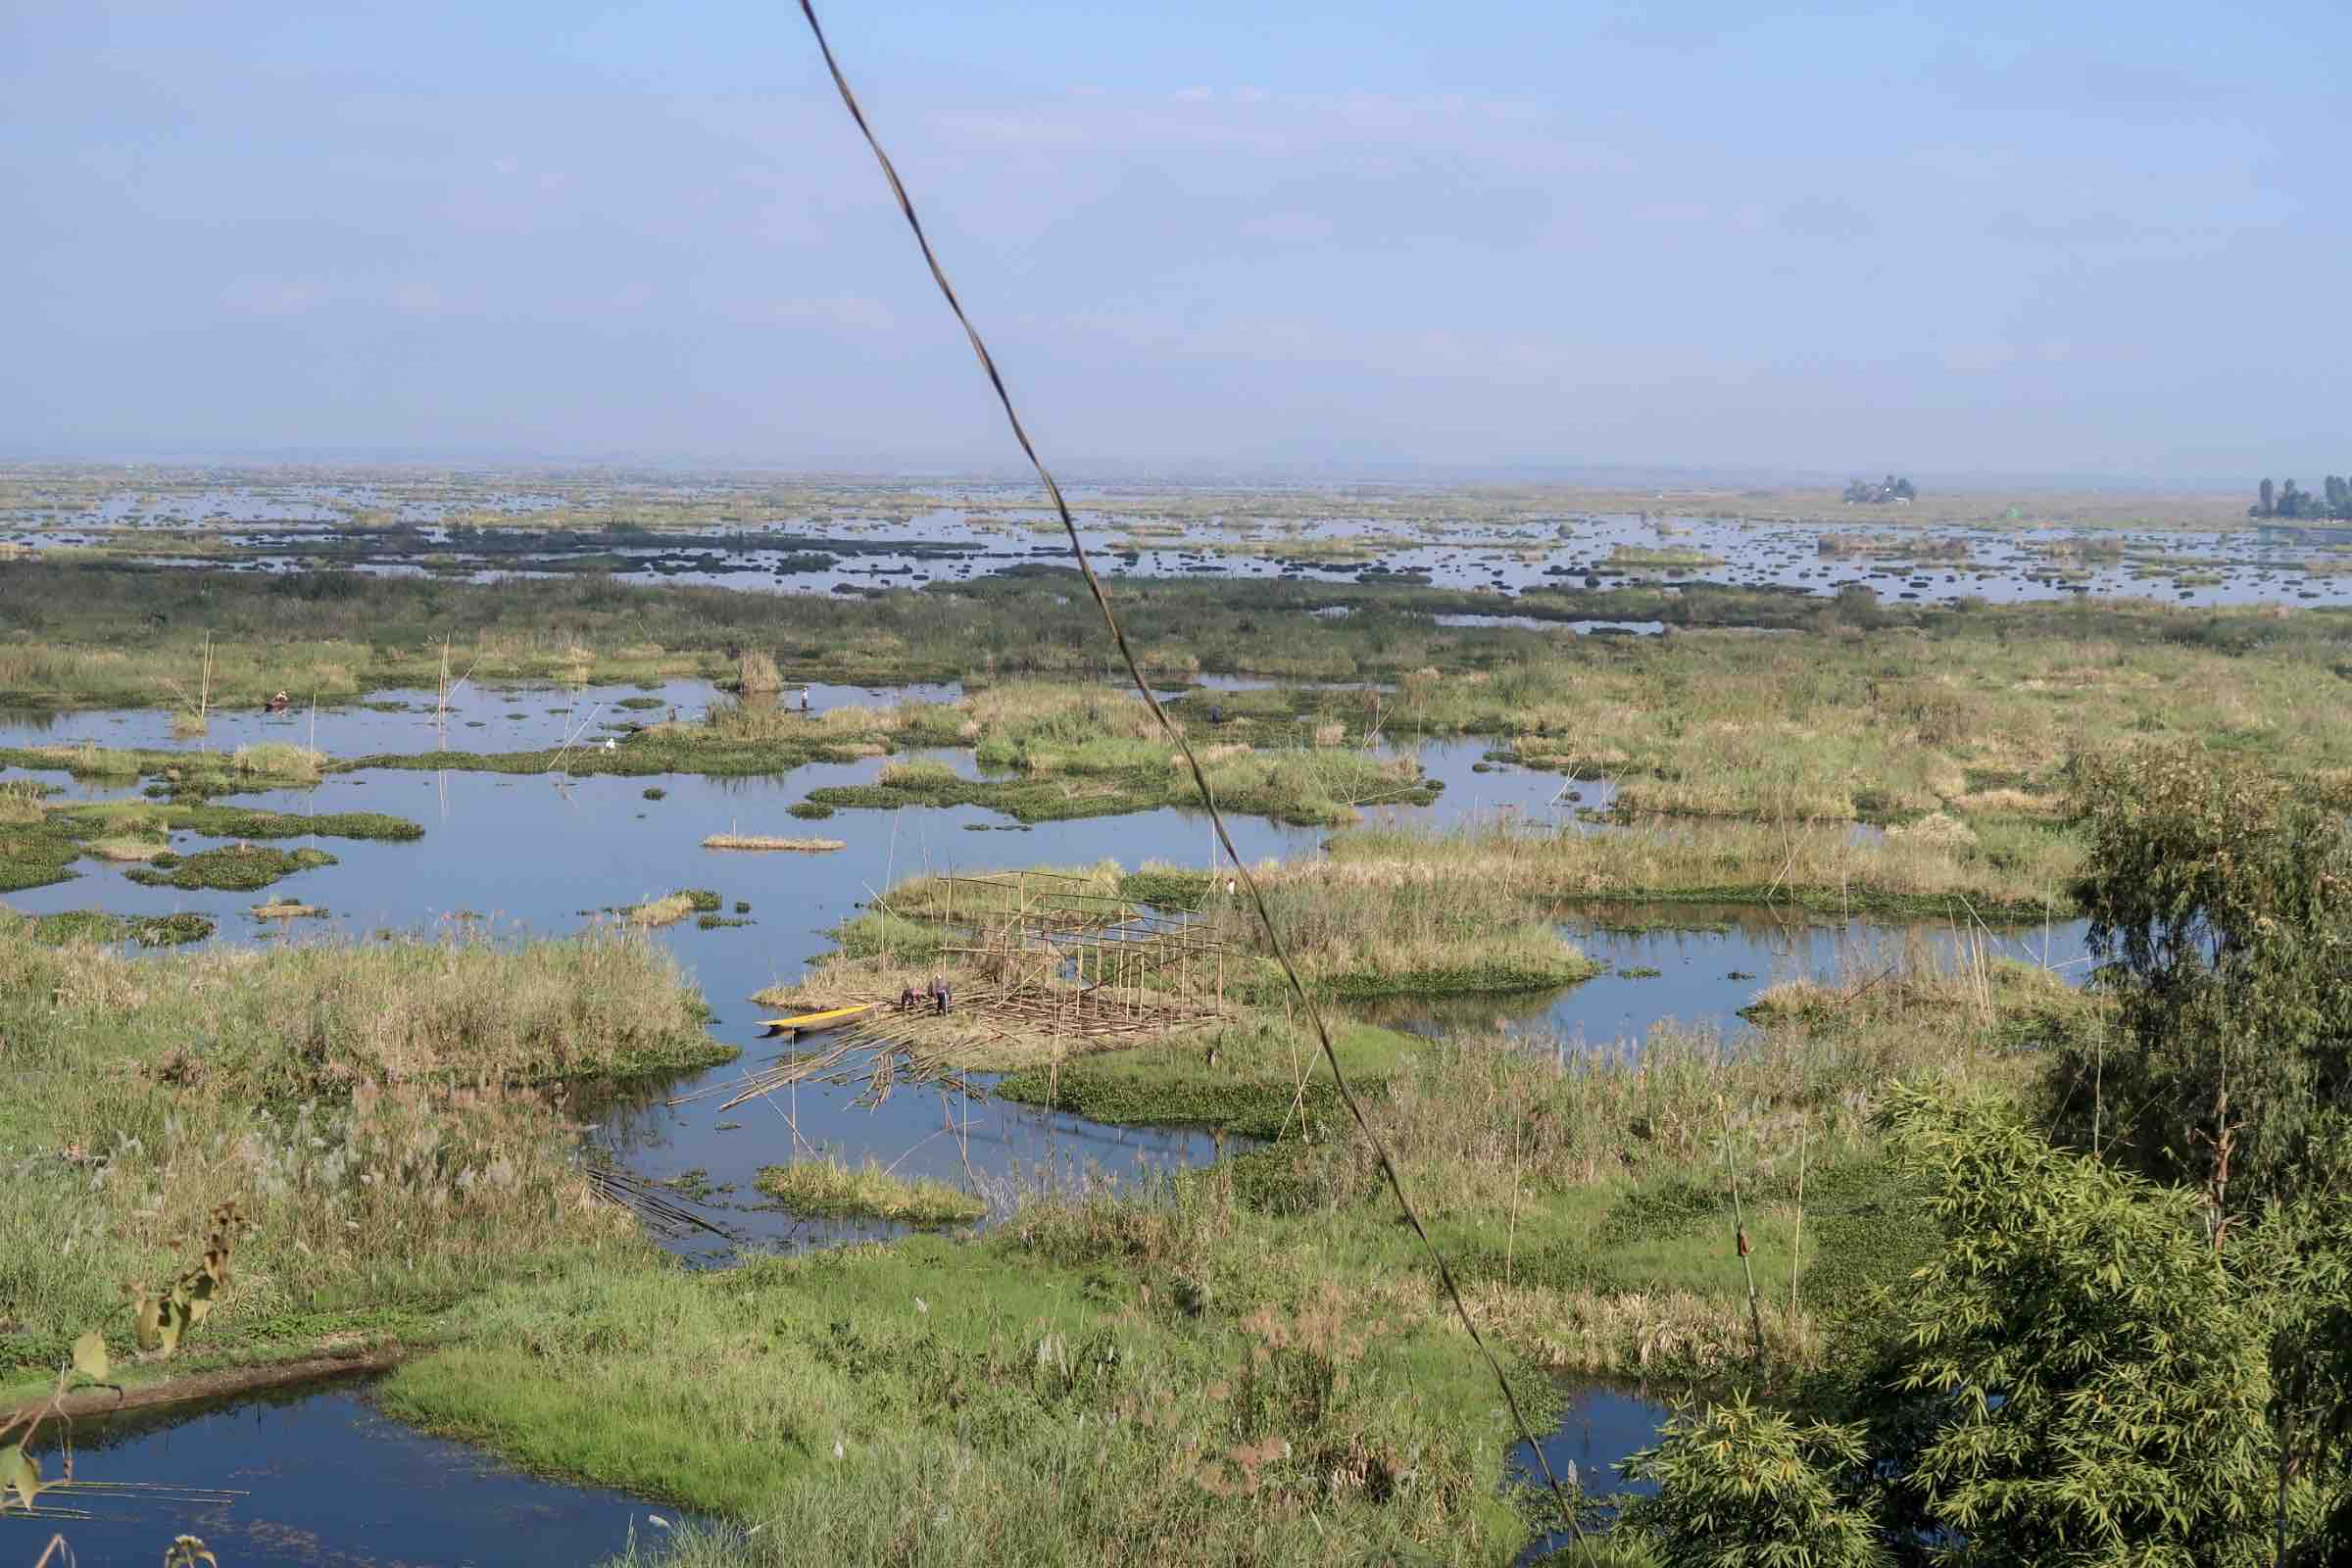 Overlanding Asia by motorbike - stopping at Loktak Lake in Manipur, North East India